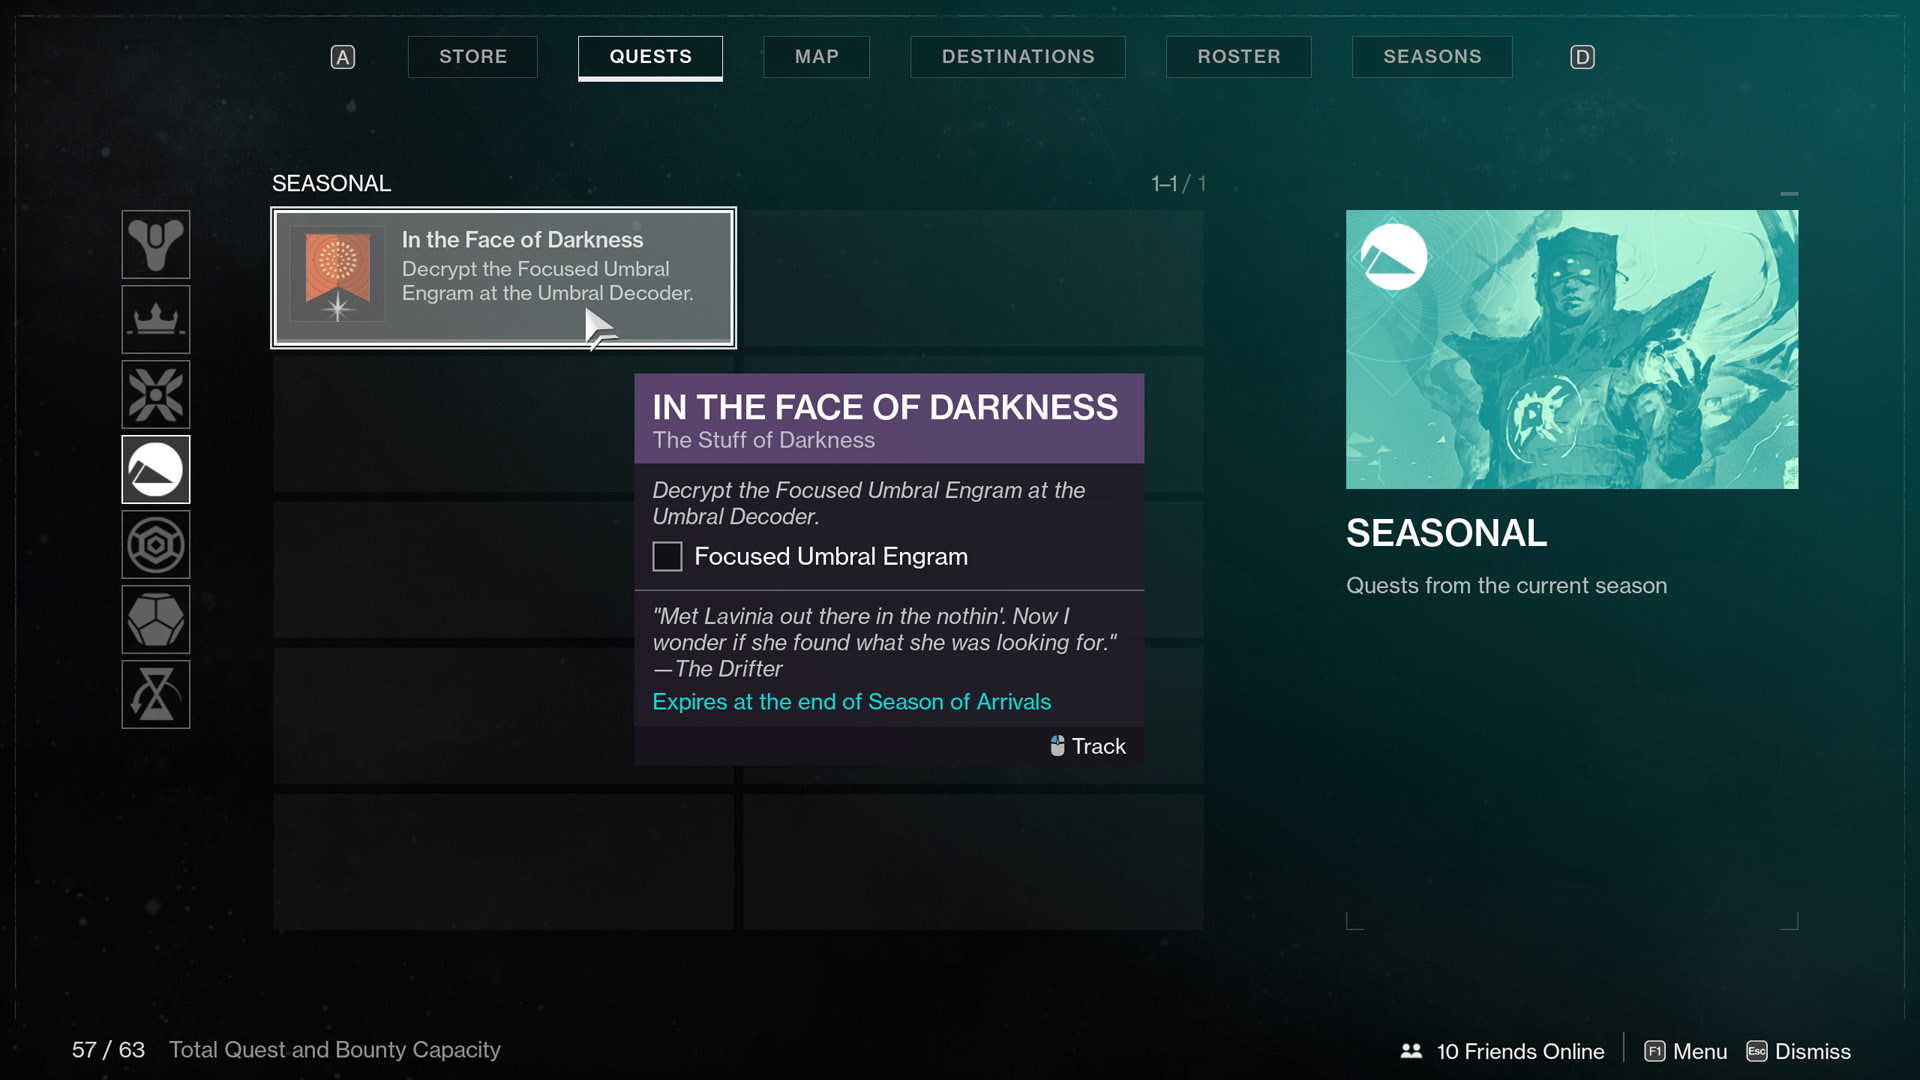 destiny 2 season of arrivals in the face of darkness The Stuff of Darkness